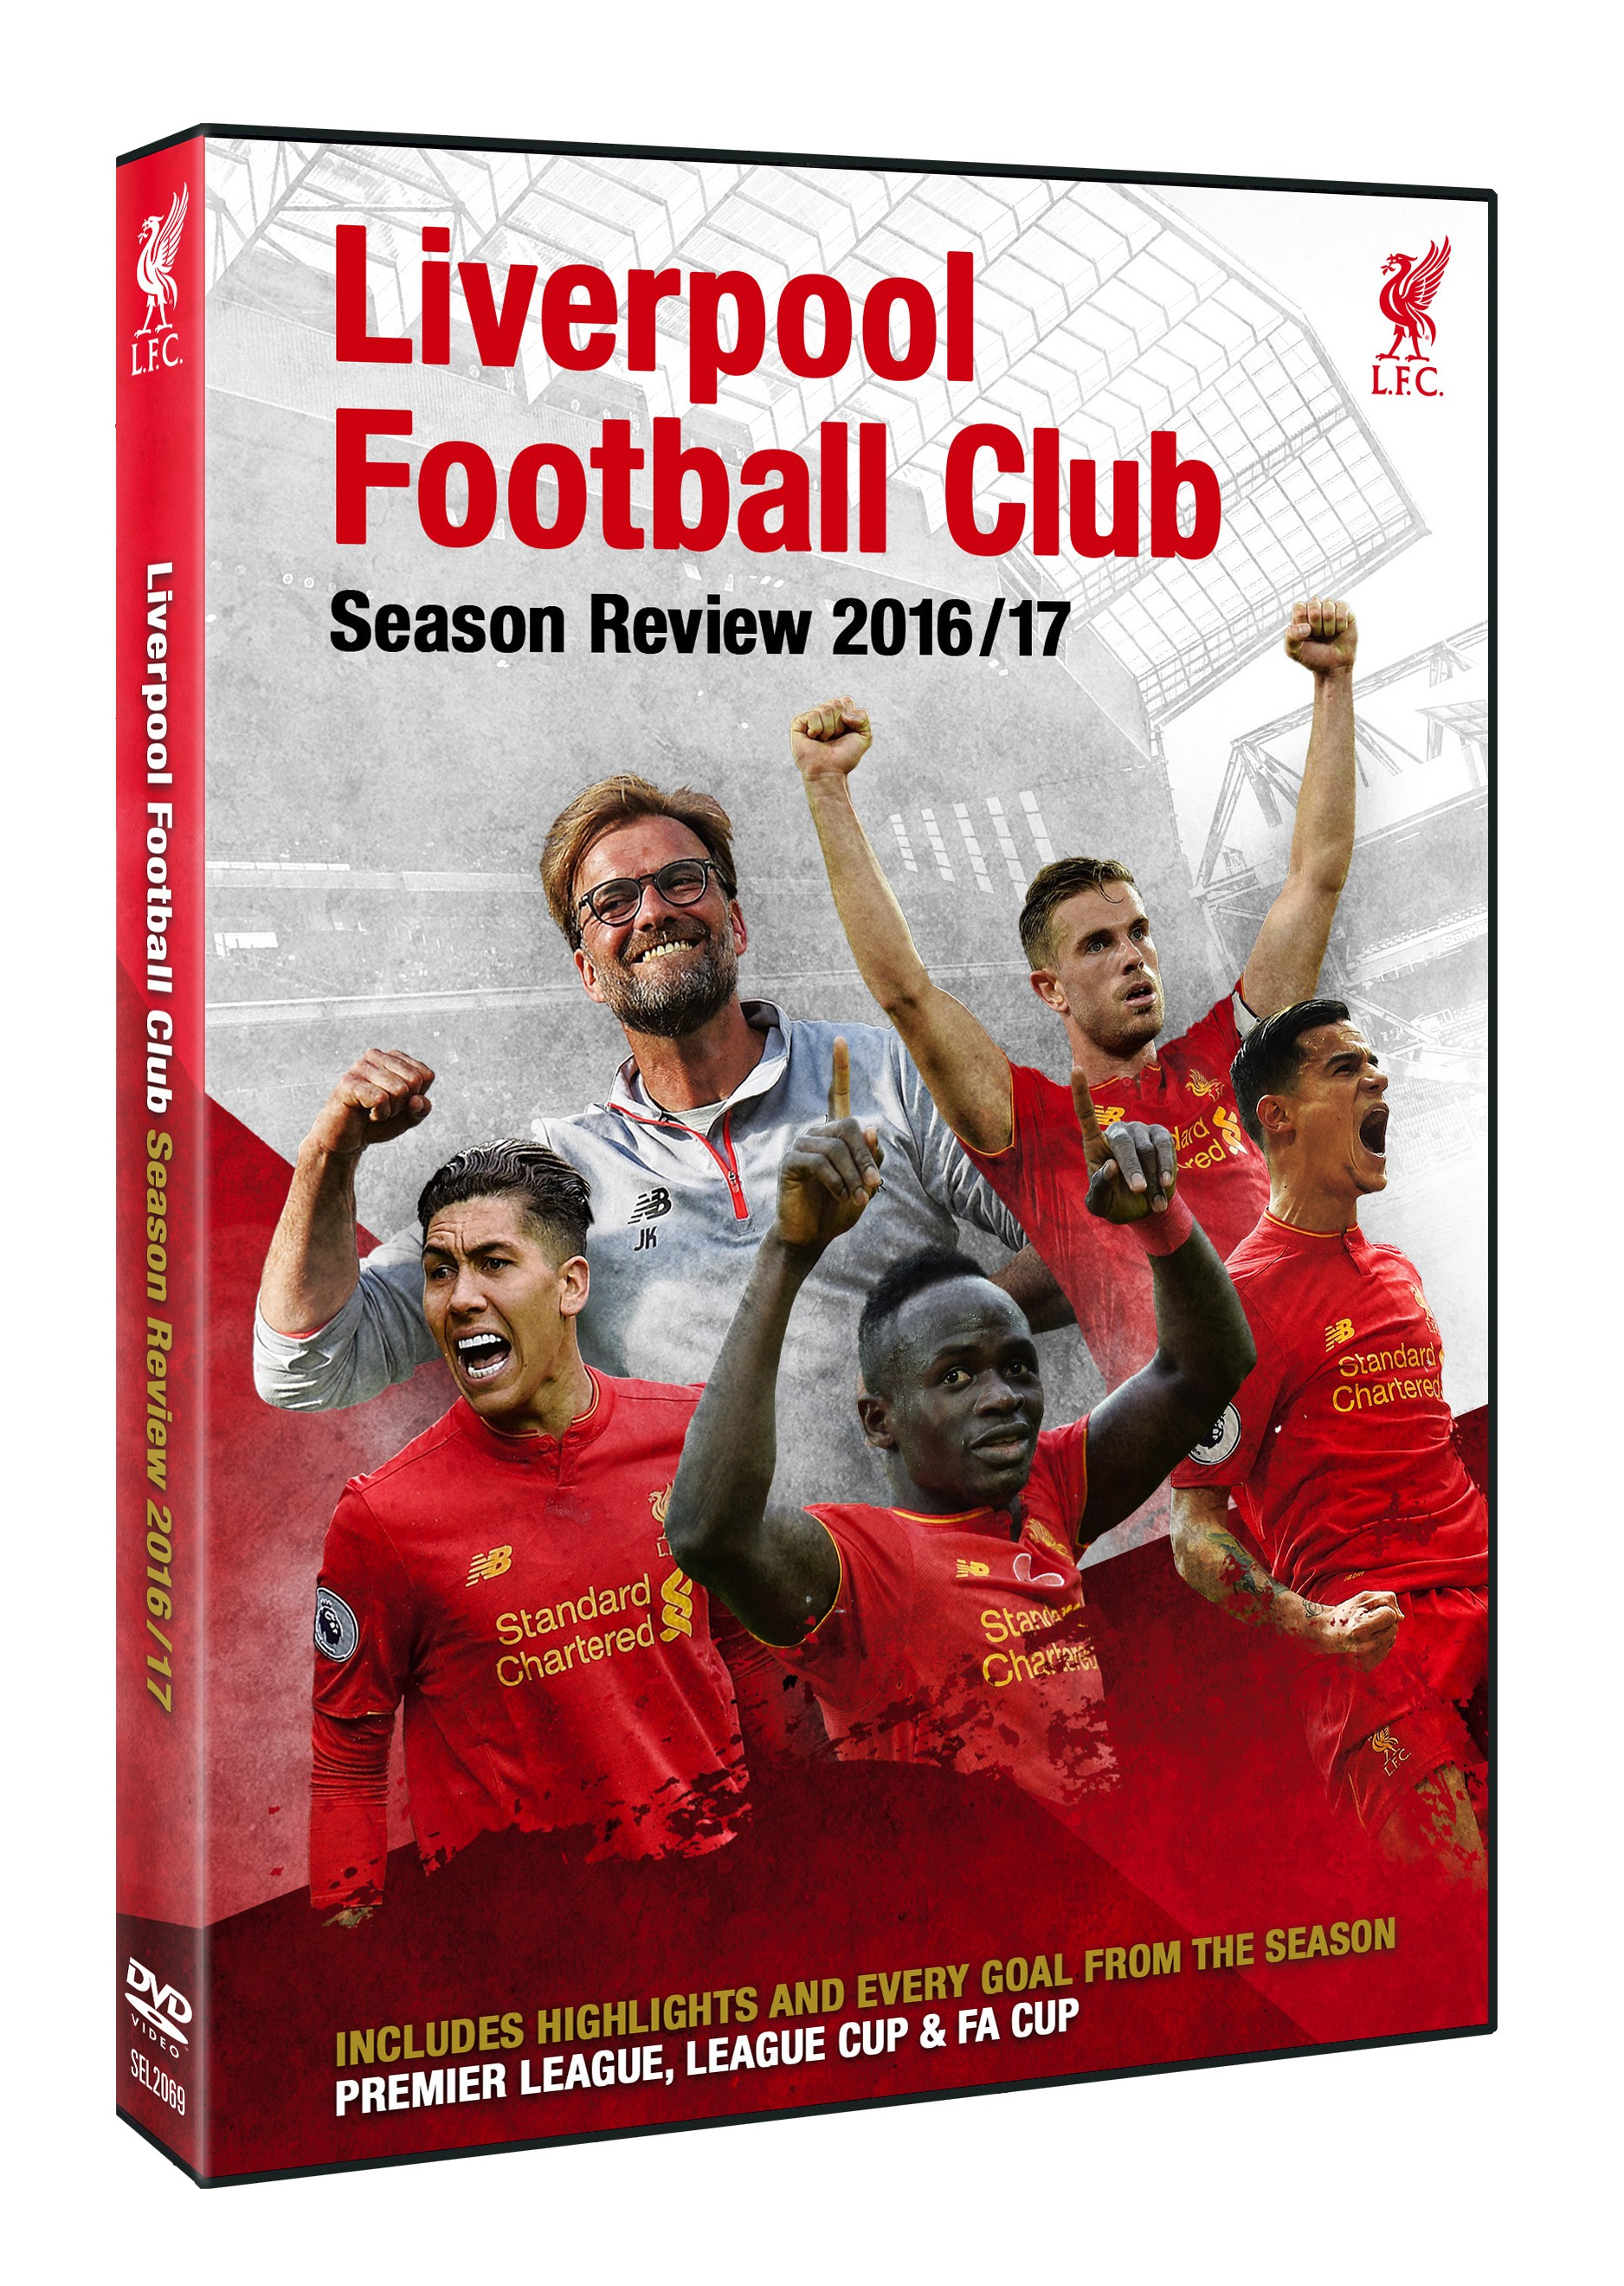 LFC Season Review DVD 16/17